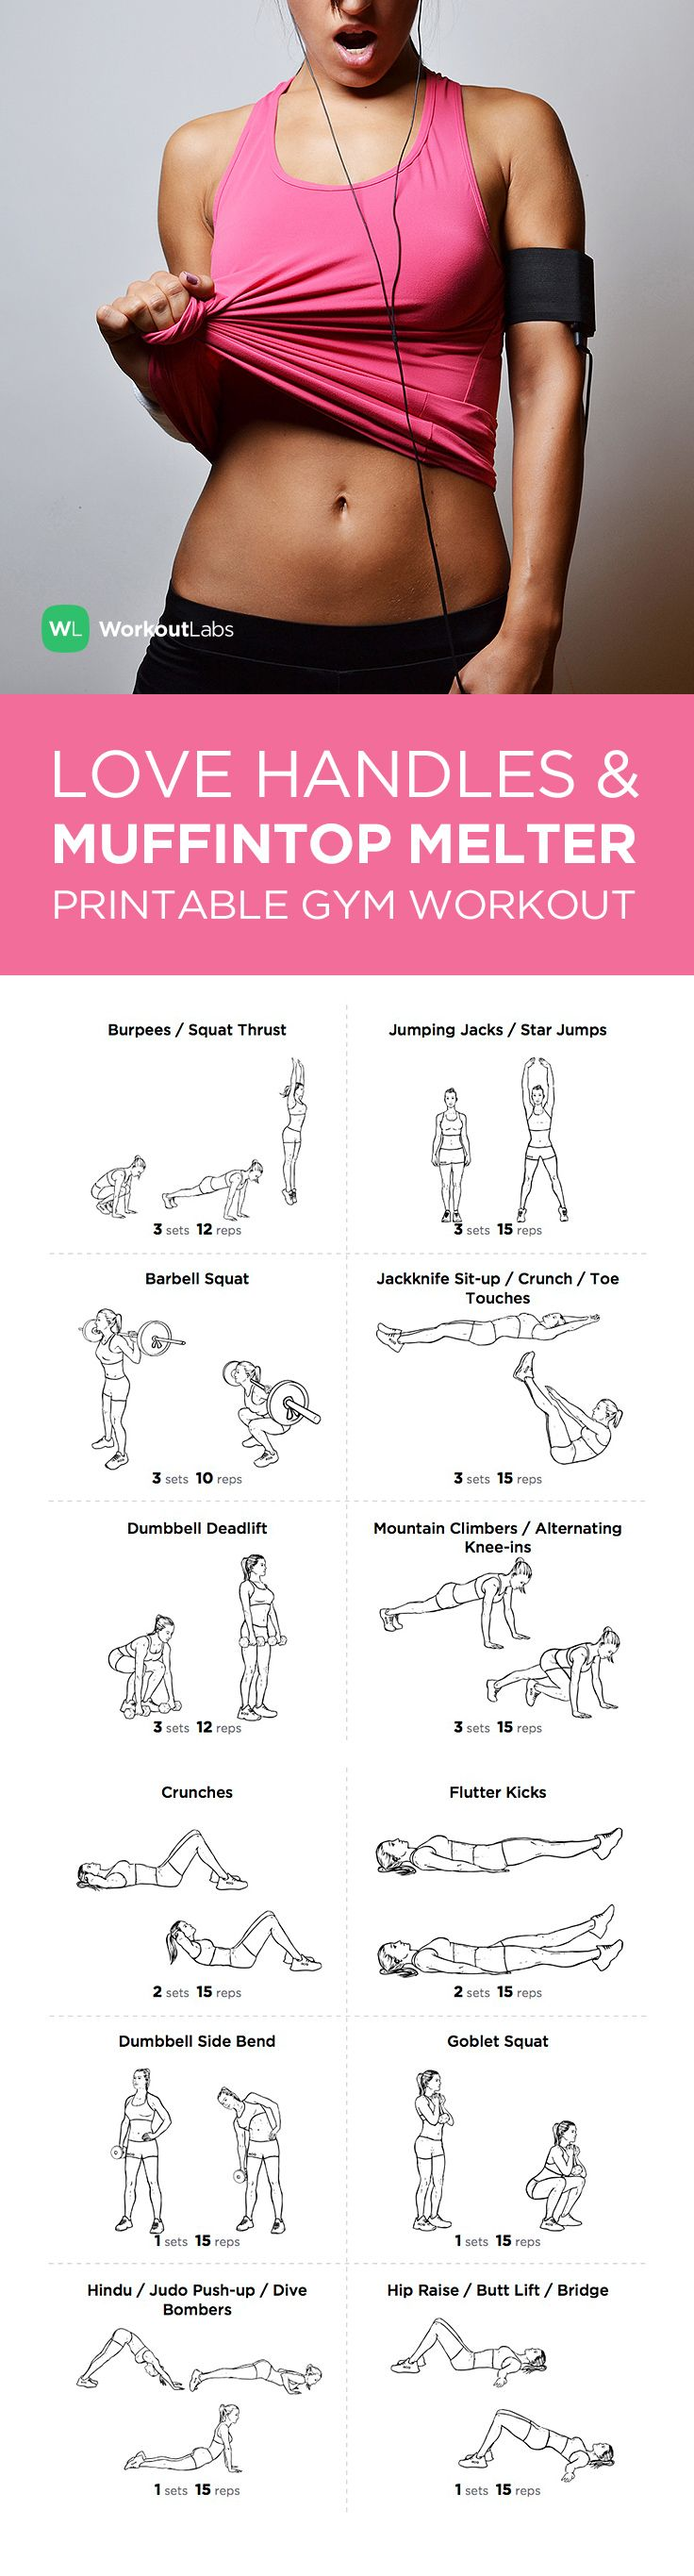 Visit http://wlabs.me/1sS9gnH for a FREE PDF of this Love Handles and Muffin Top Melter workout!